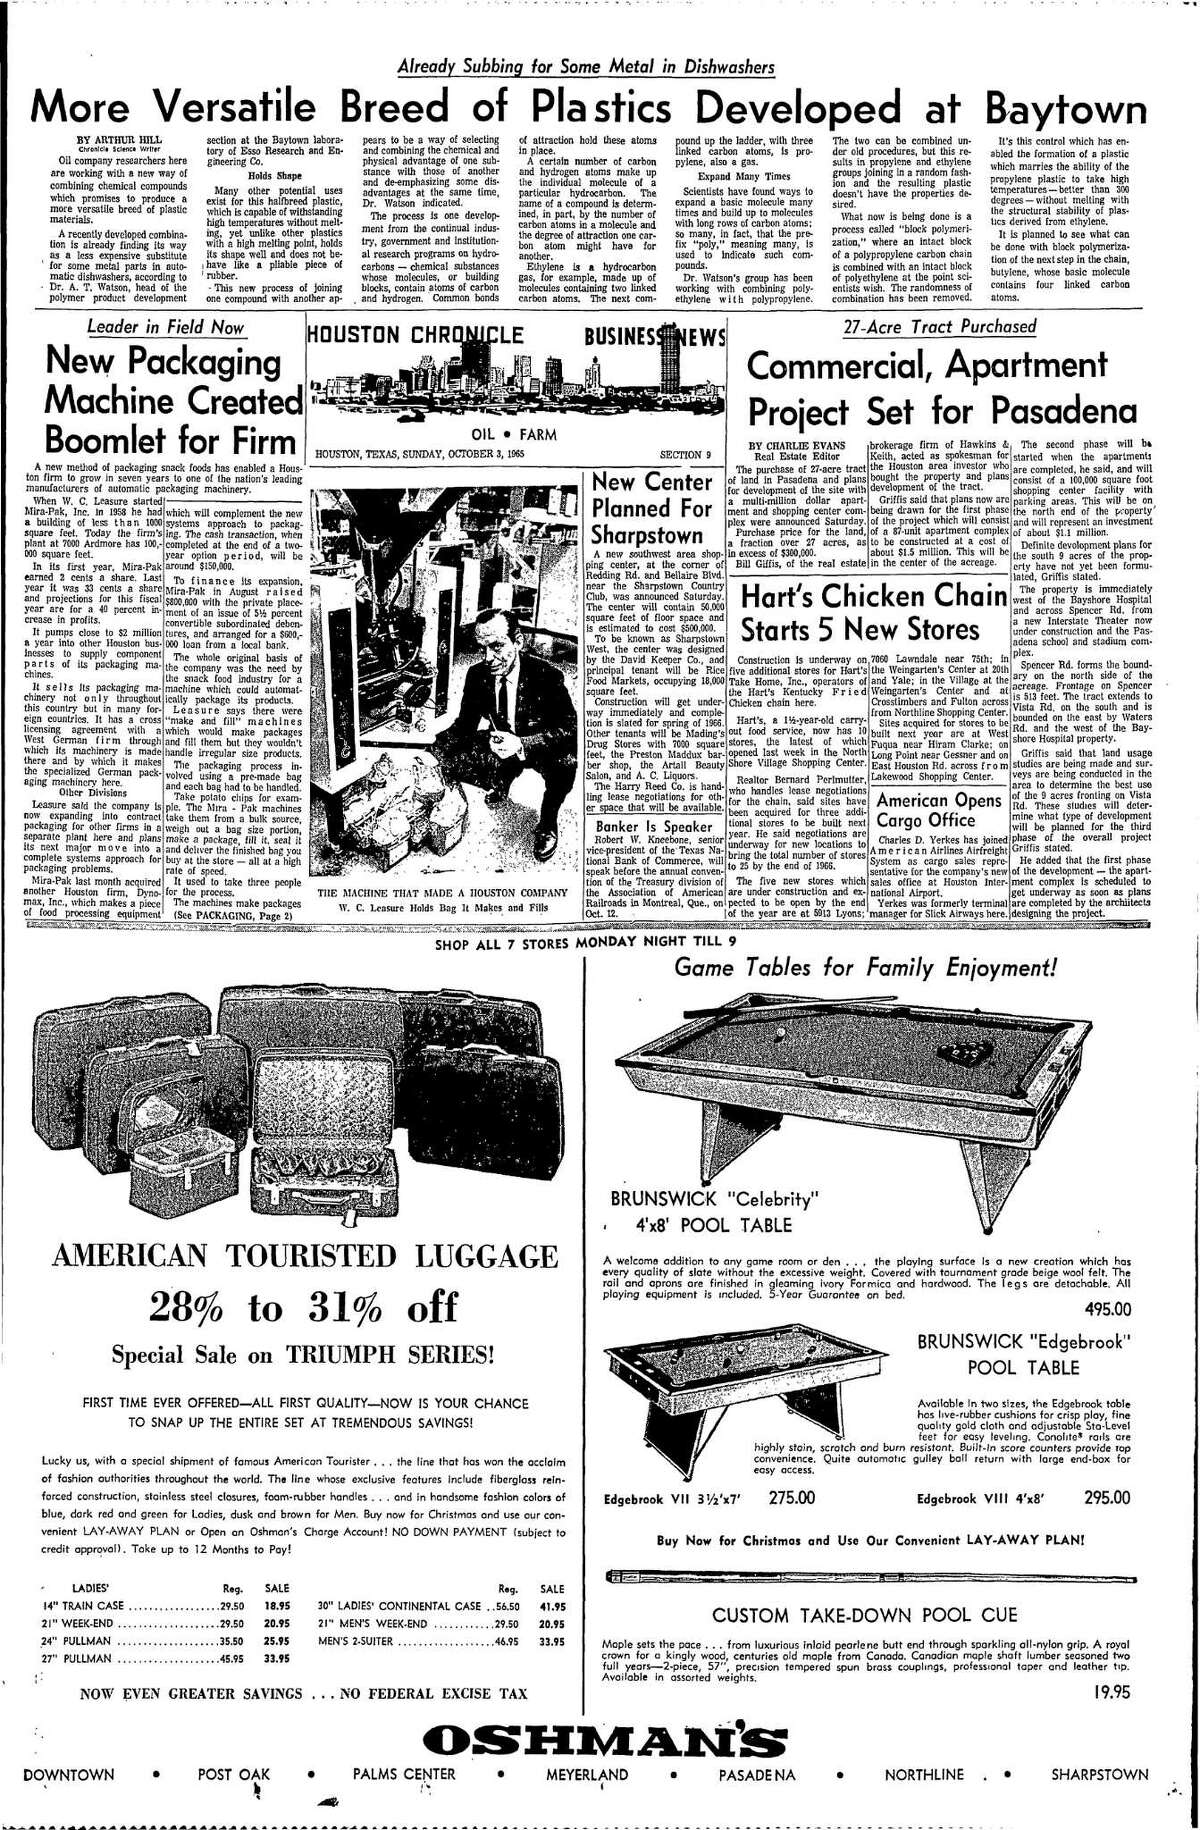 Houston Chronicle inside page - October 3, 1965 - section 9, page 1. Leader in Field Now. New Packaging Machine Created Boomlet for Firm.